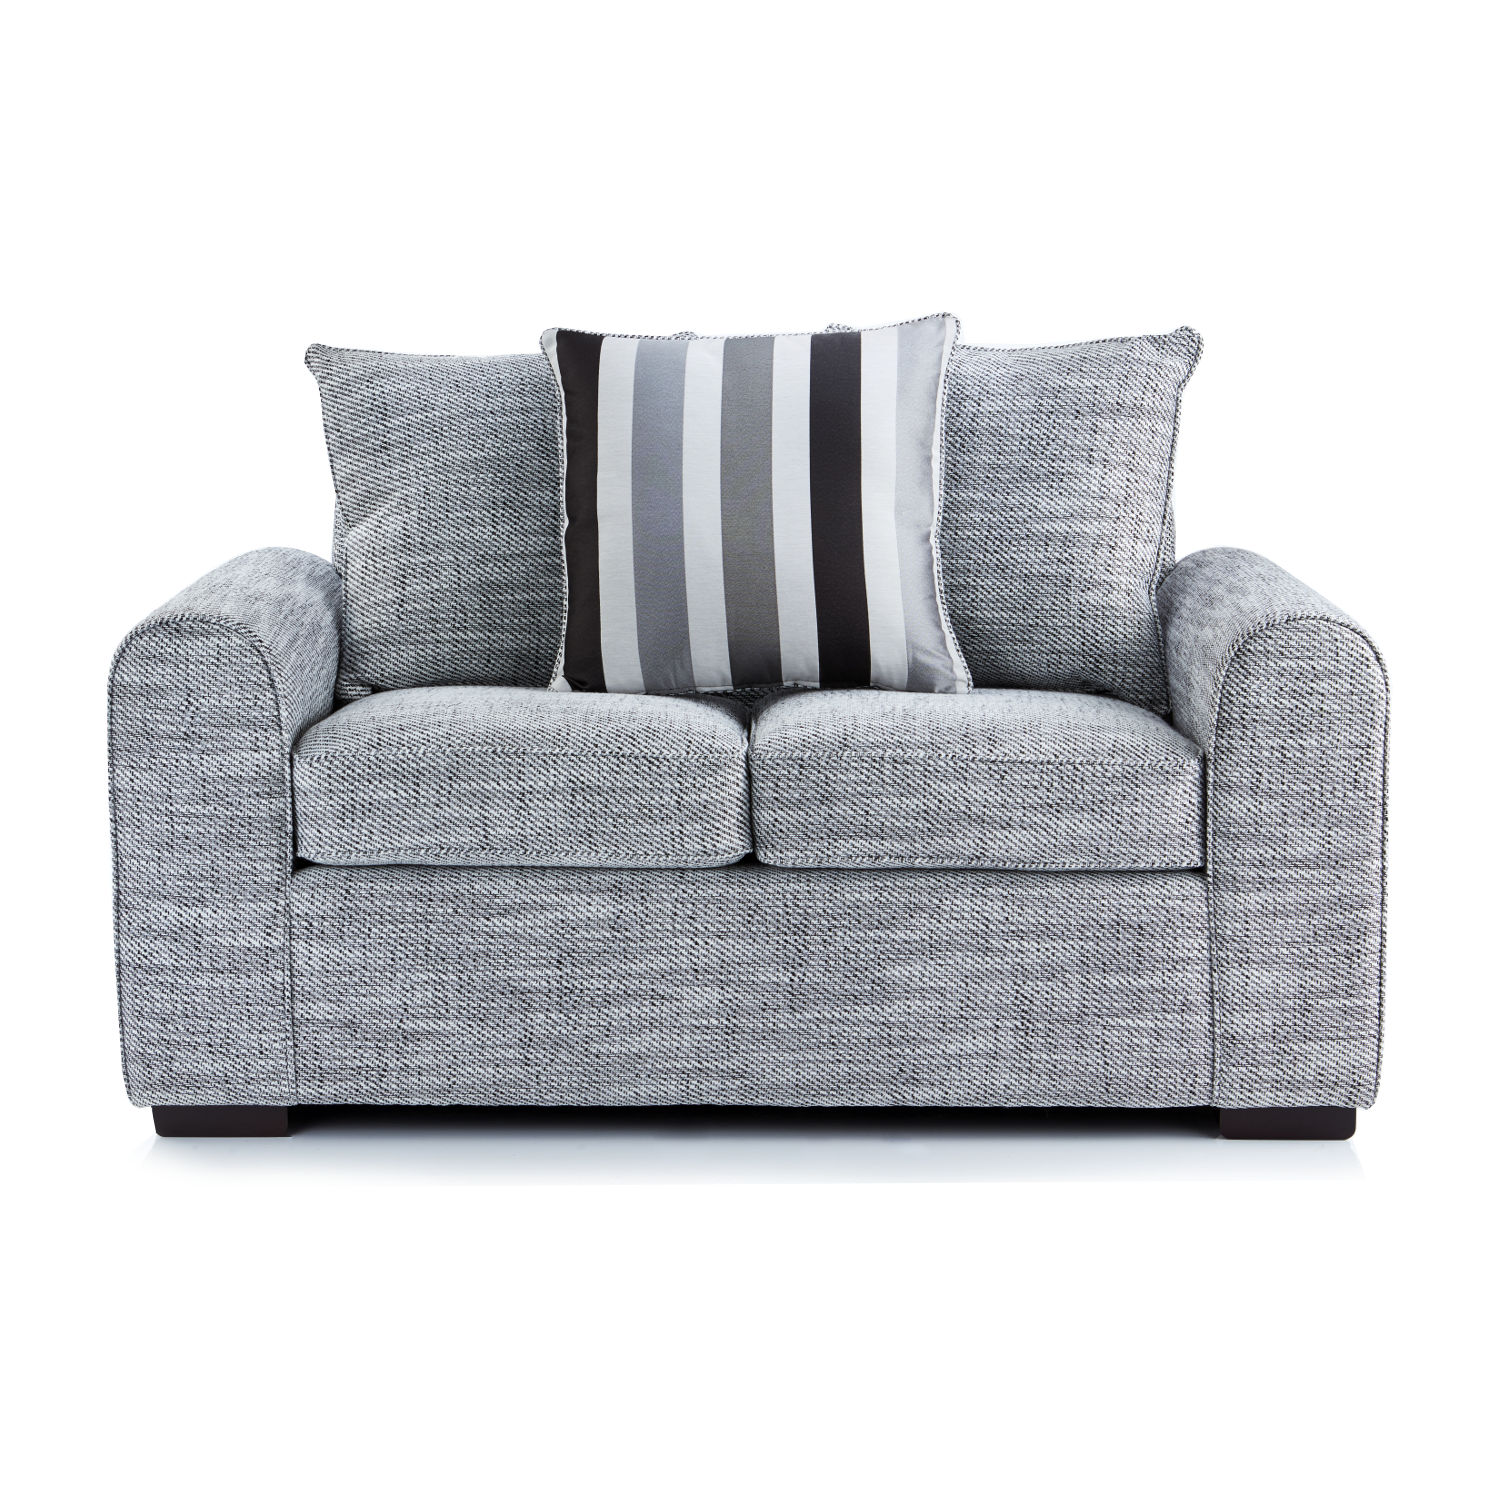 Kenya 2 Seater Fabric Sofa